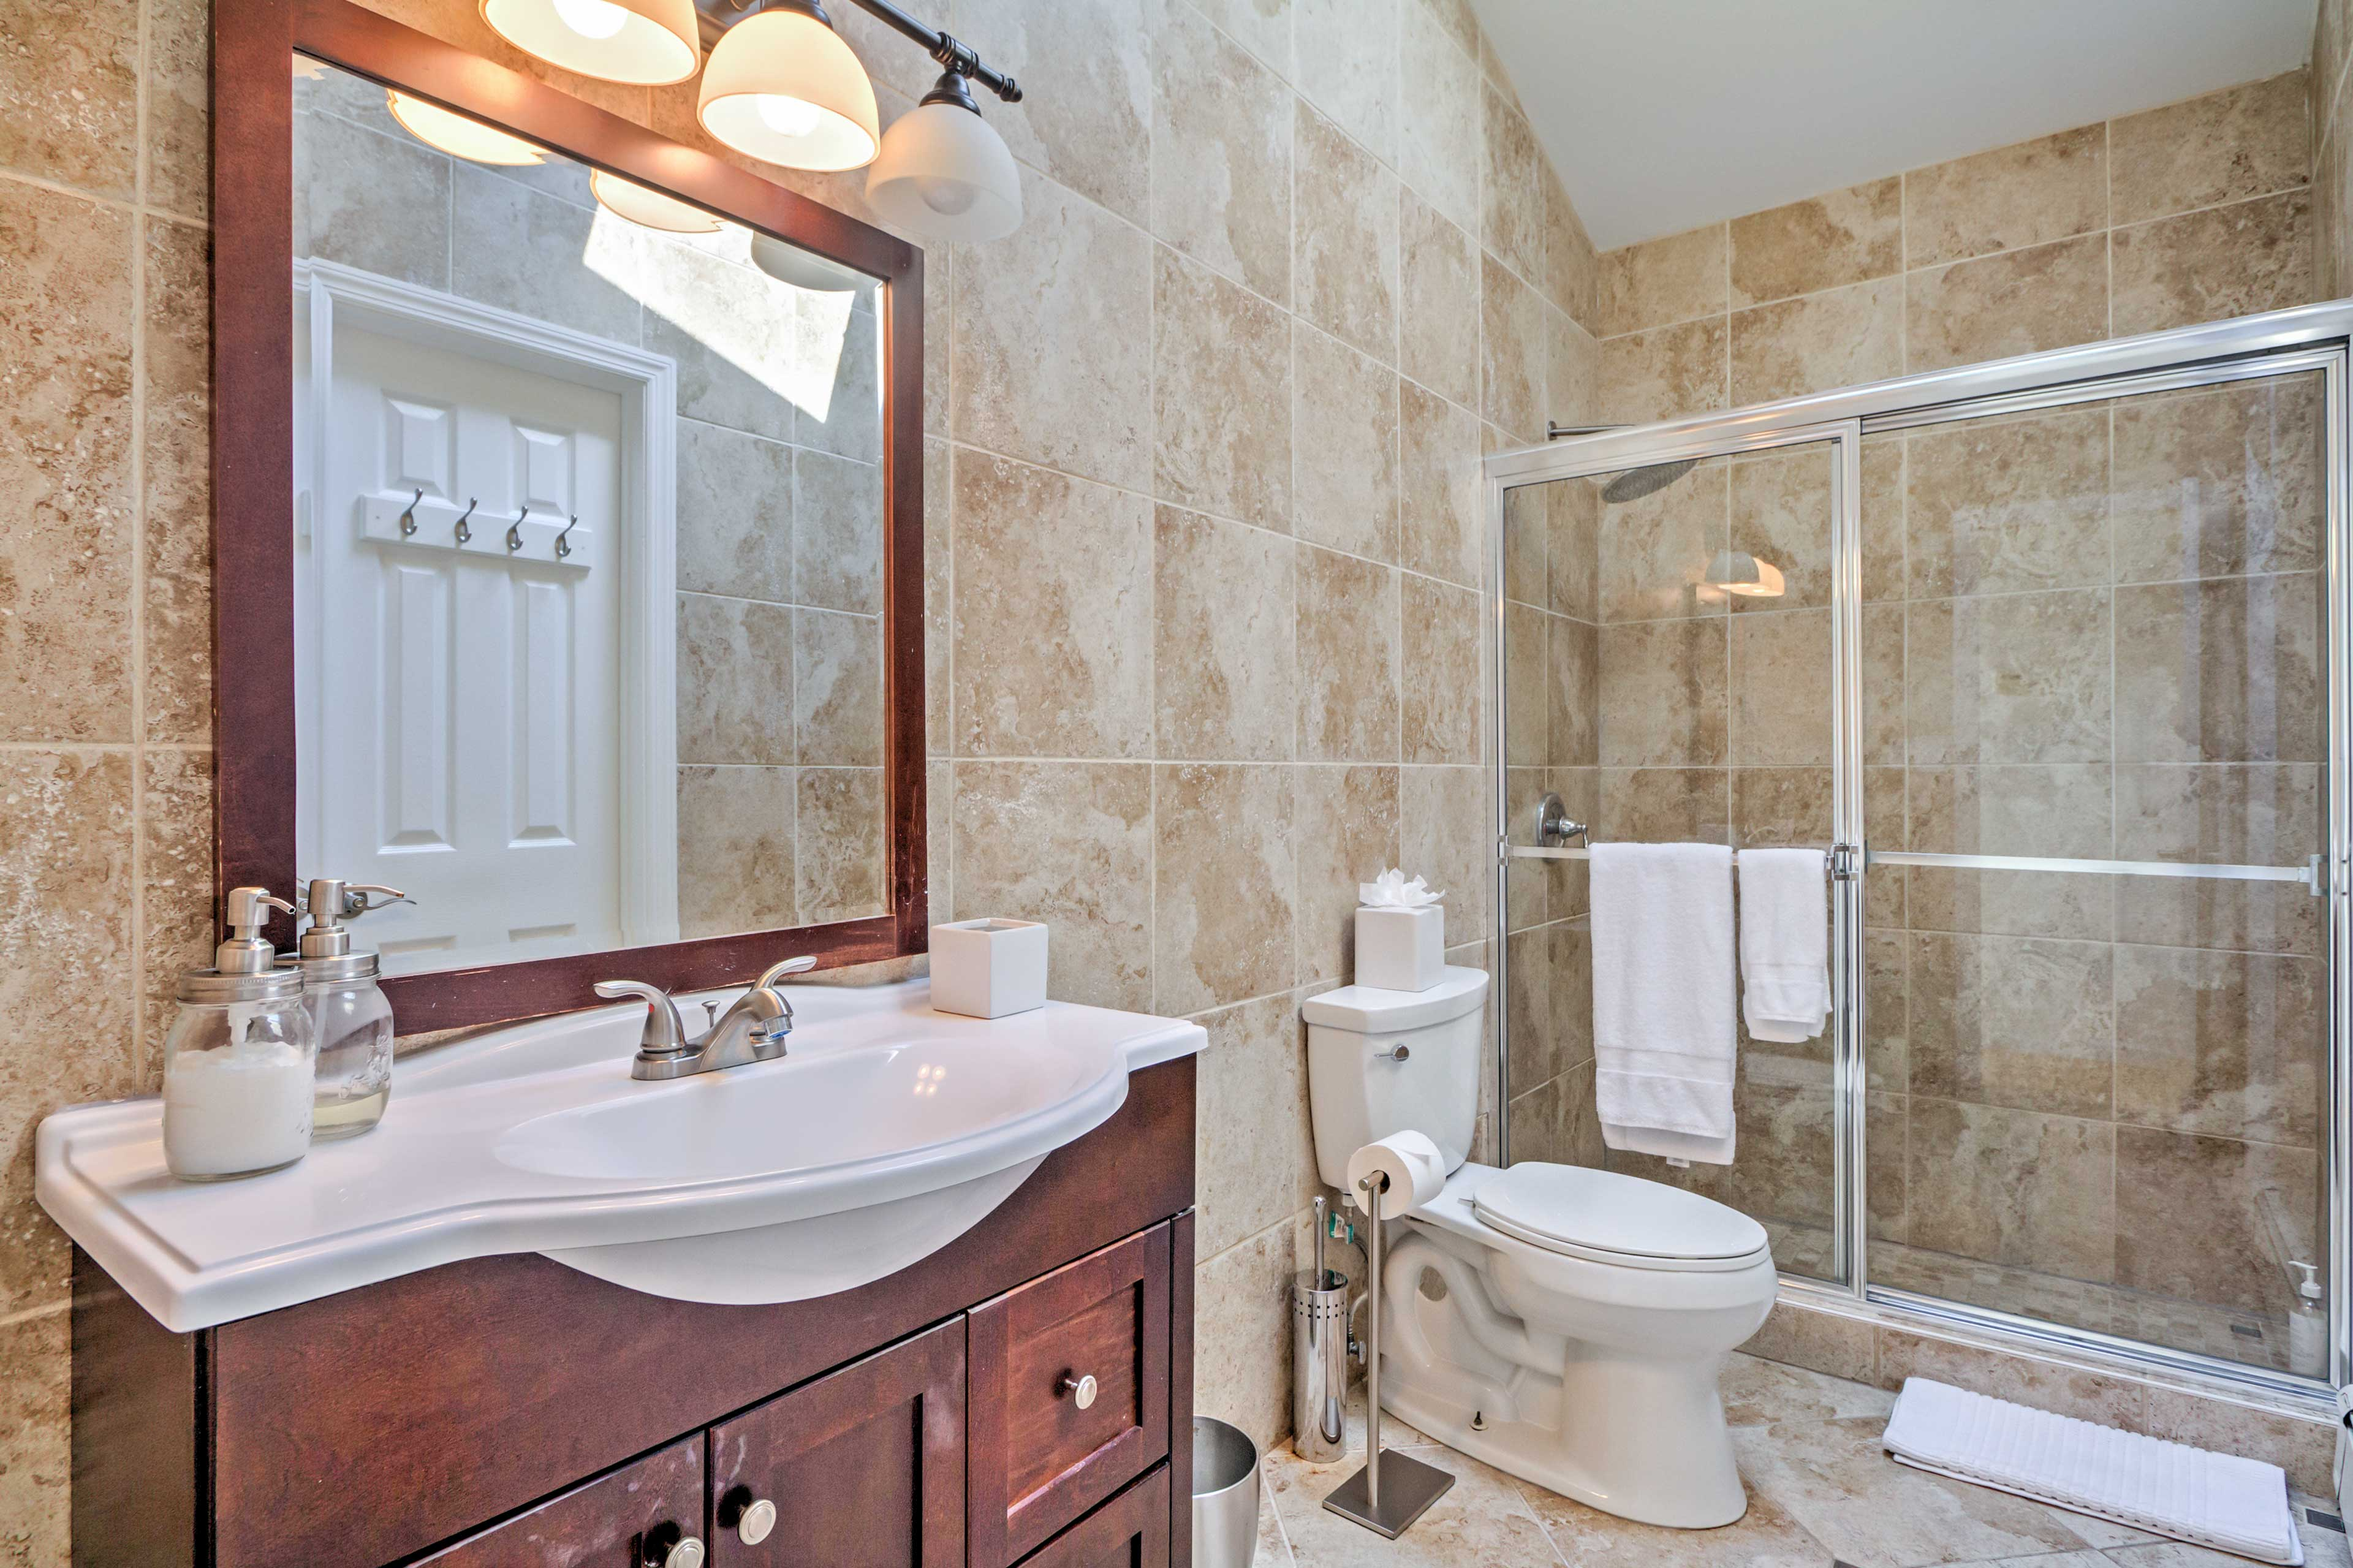 Freshen up in this clean bathroom.